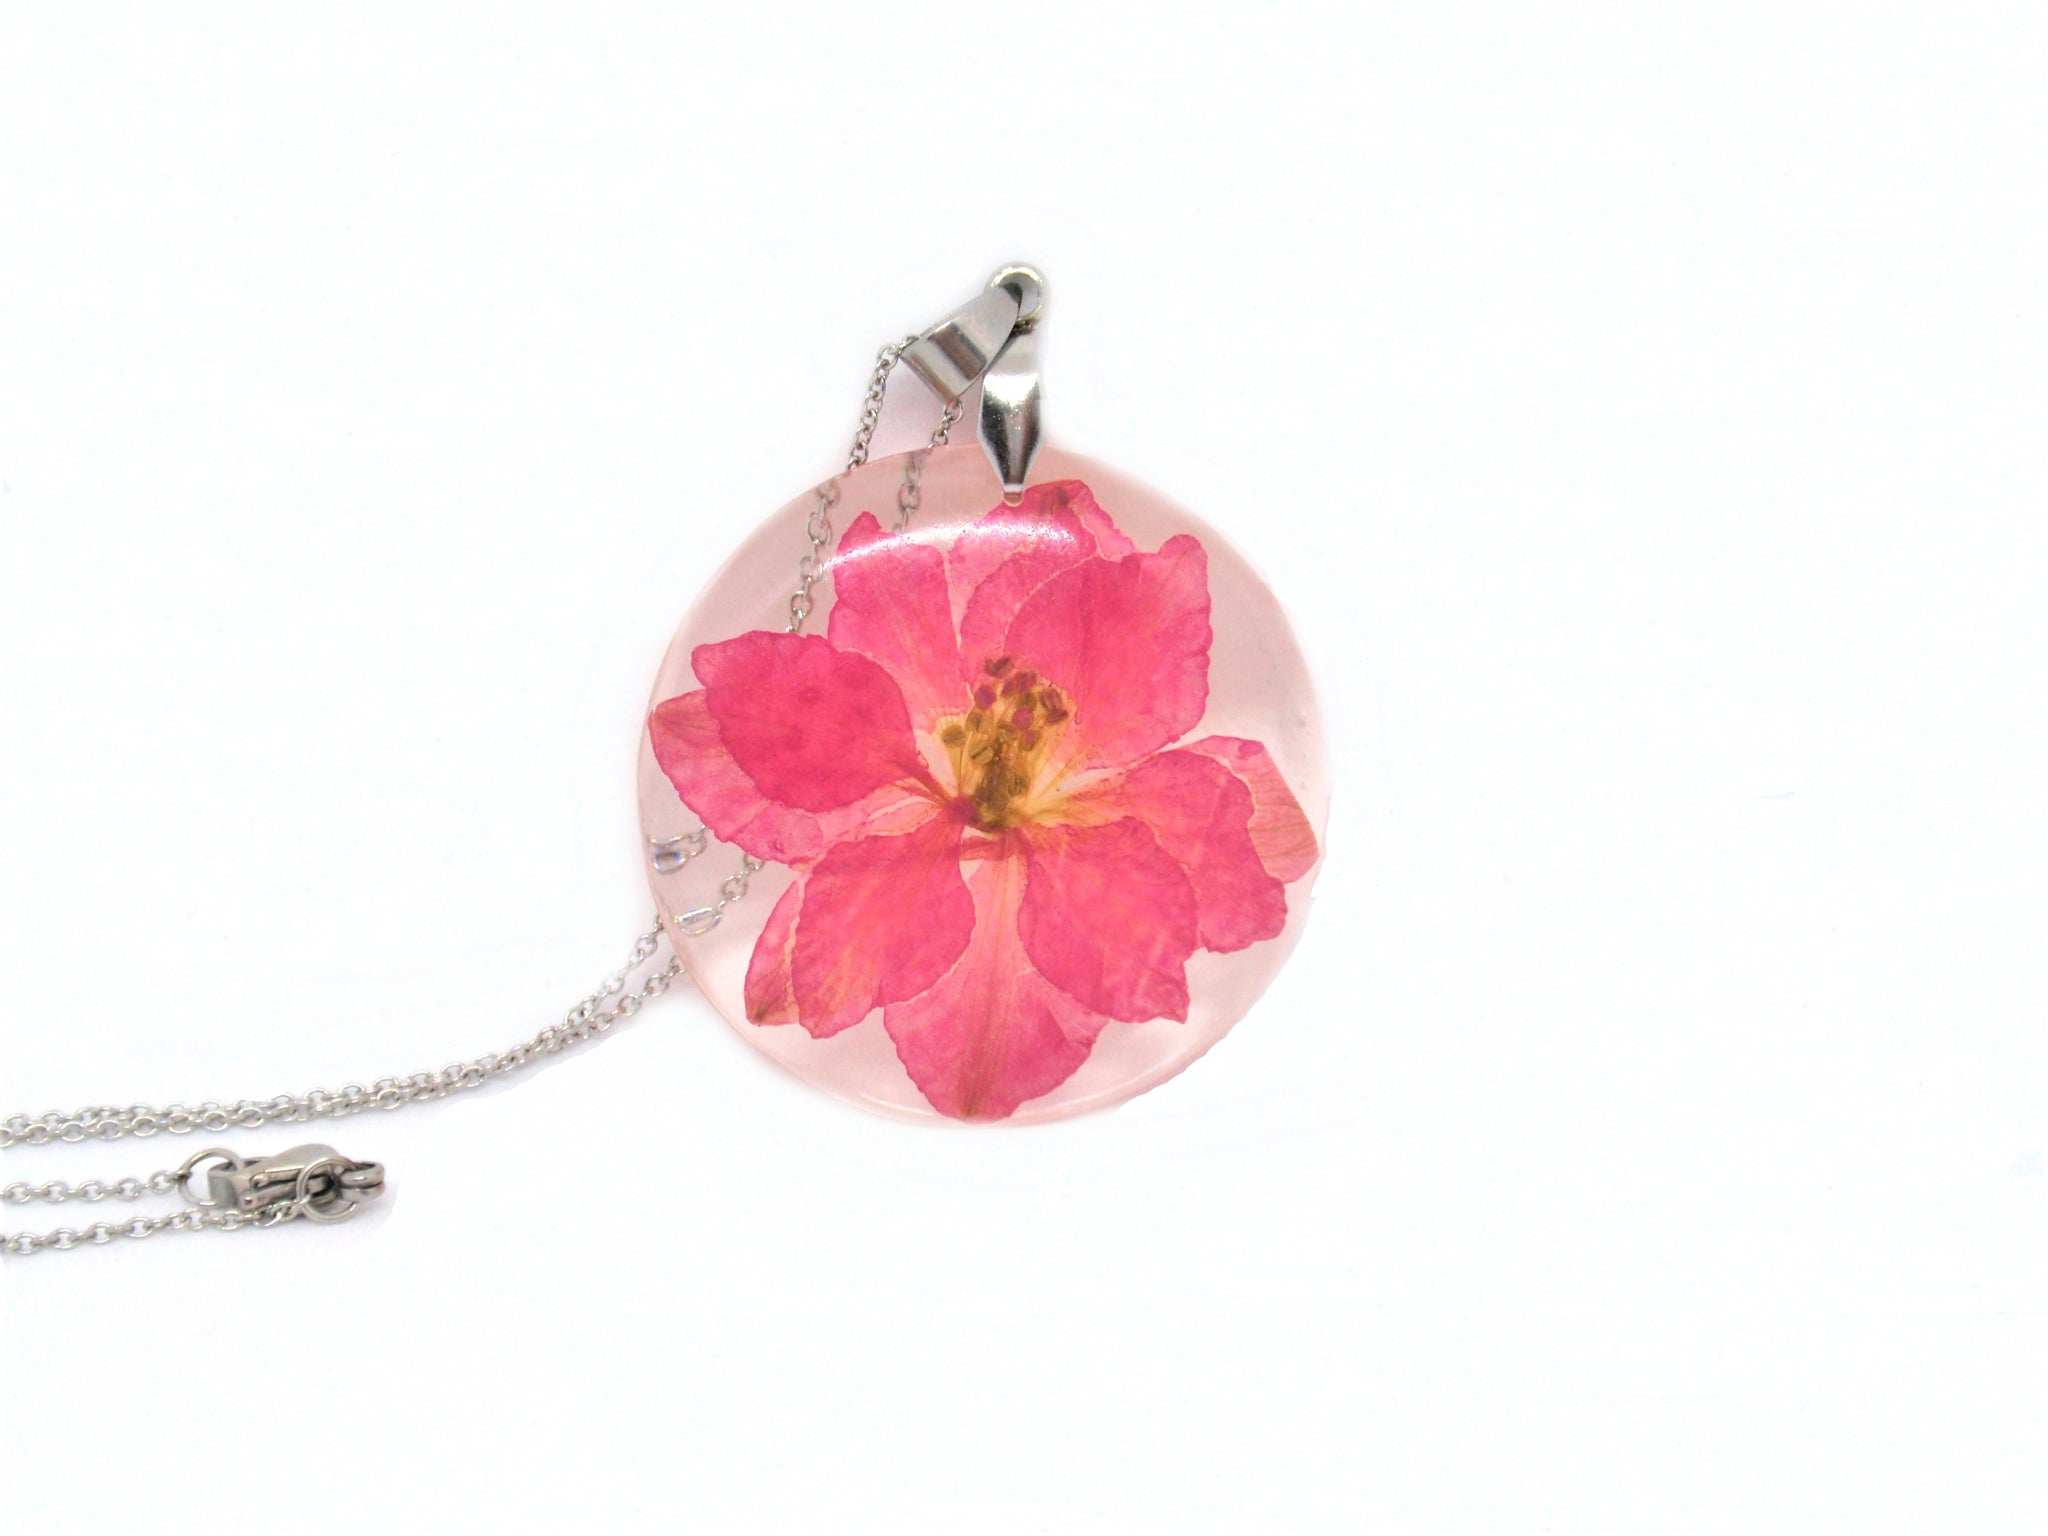 Flower Necklace Pink Larkspur jewelry